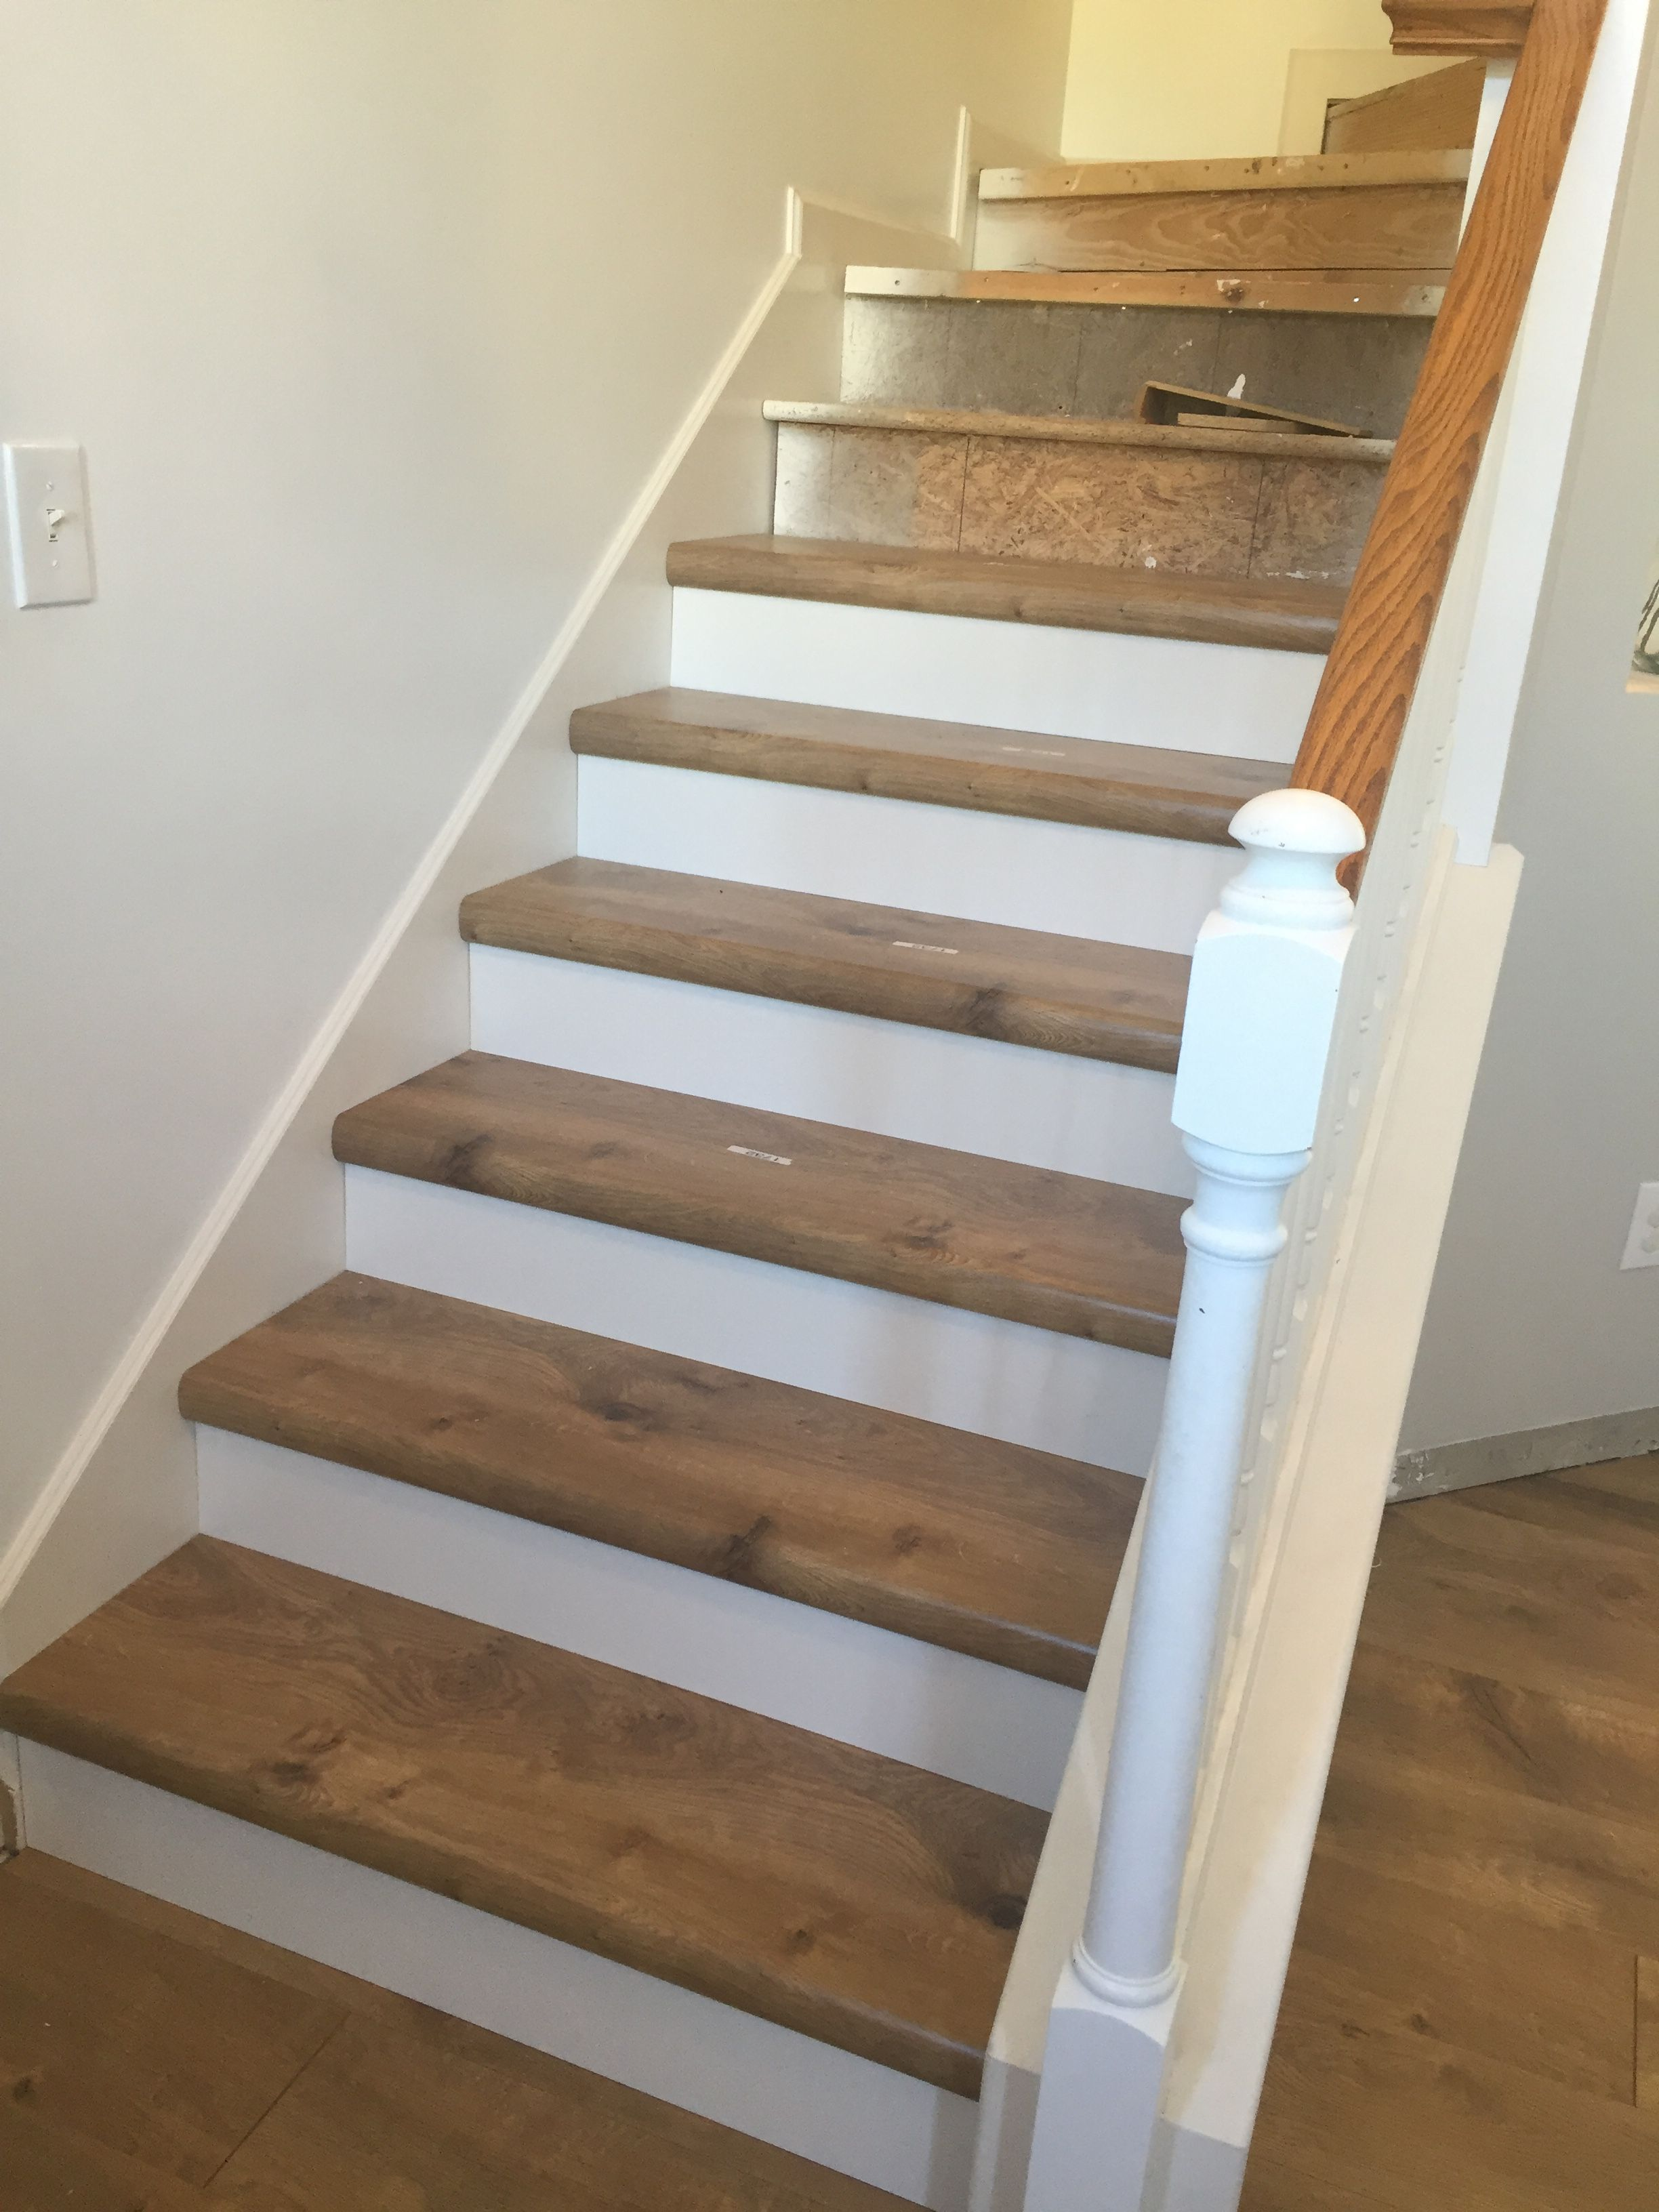 riverbend oak in pergo xp staircase renovation